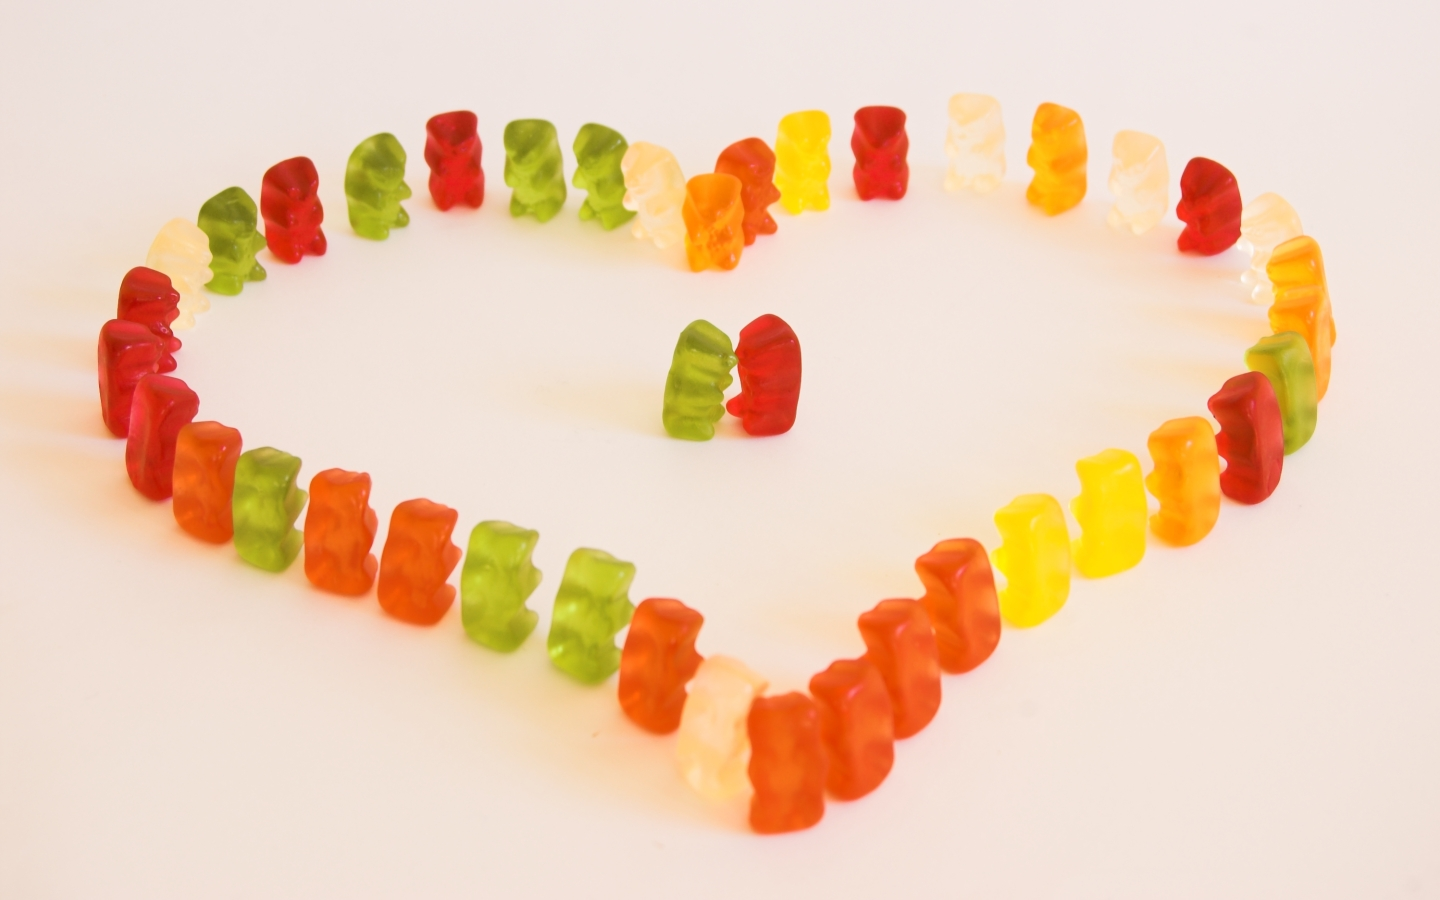 Gummy Bear Wallpaper 1440x900 78261